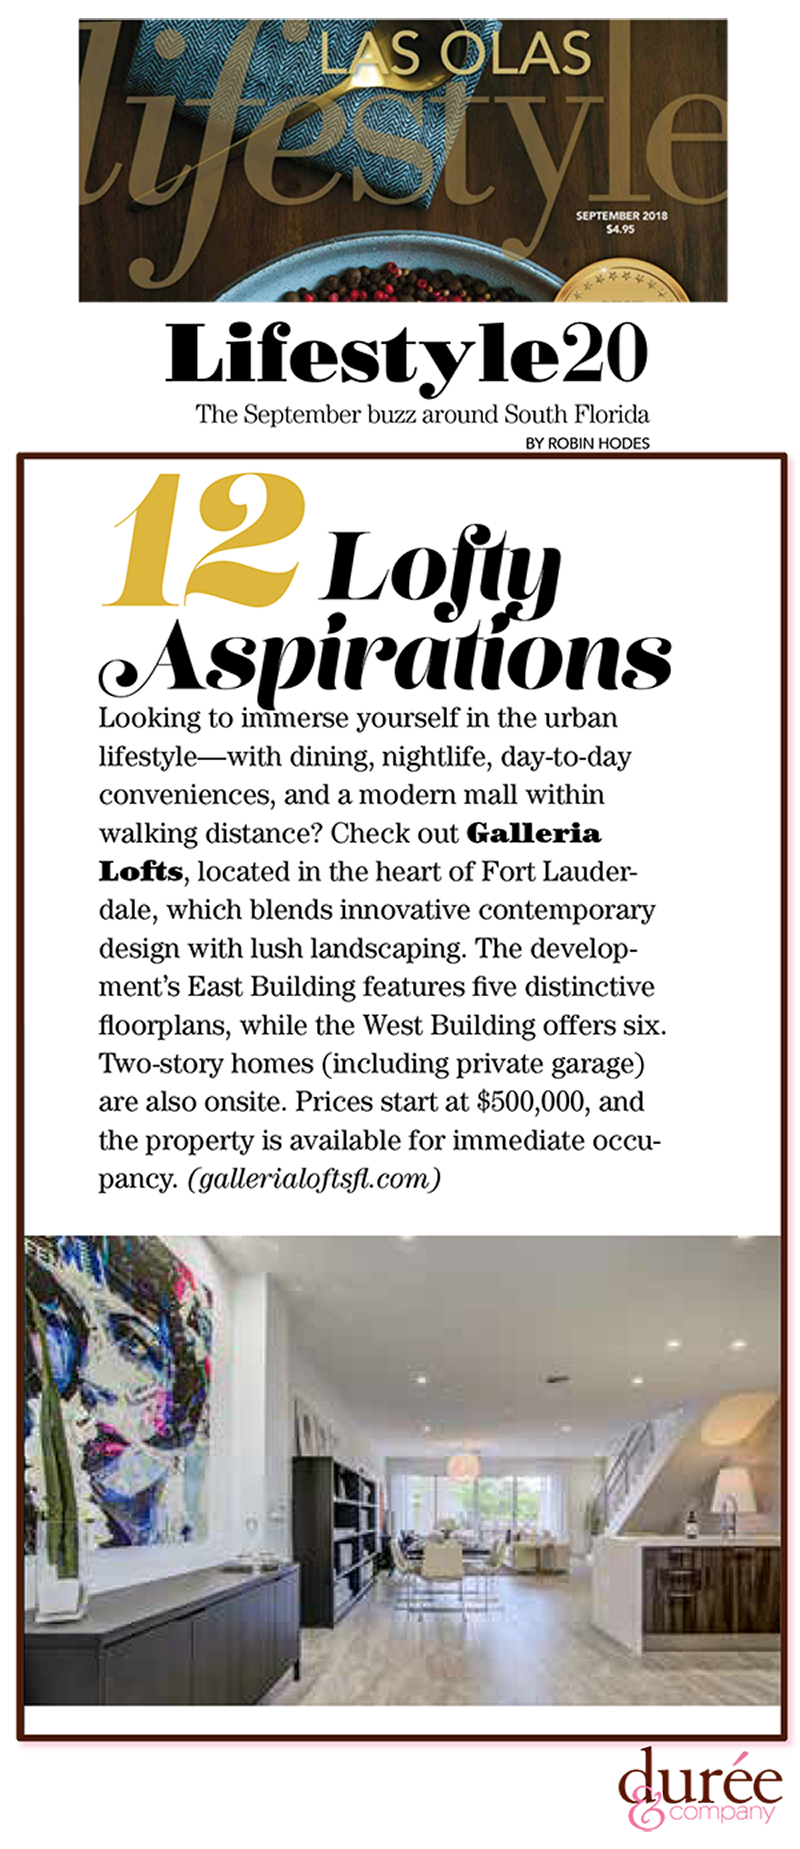 Lifestyle Magazine - SobelCo - Lifestyle 20-Lofty Aspirations - September 2018 - Galleria Lofts